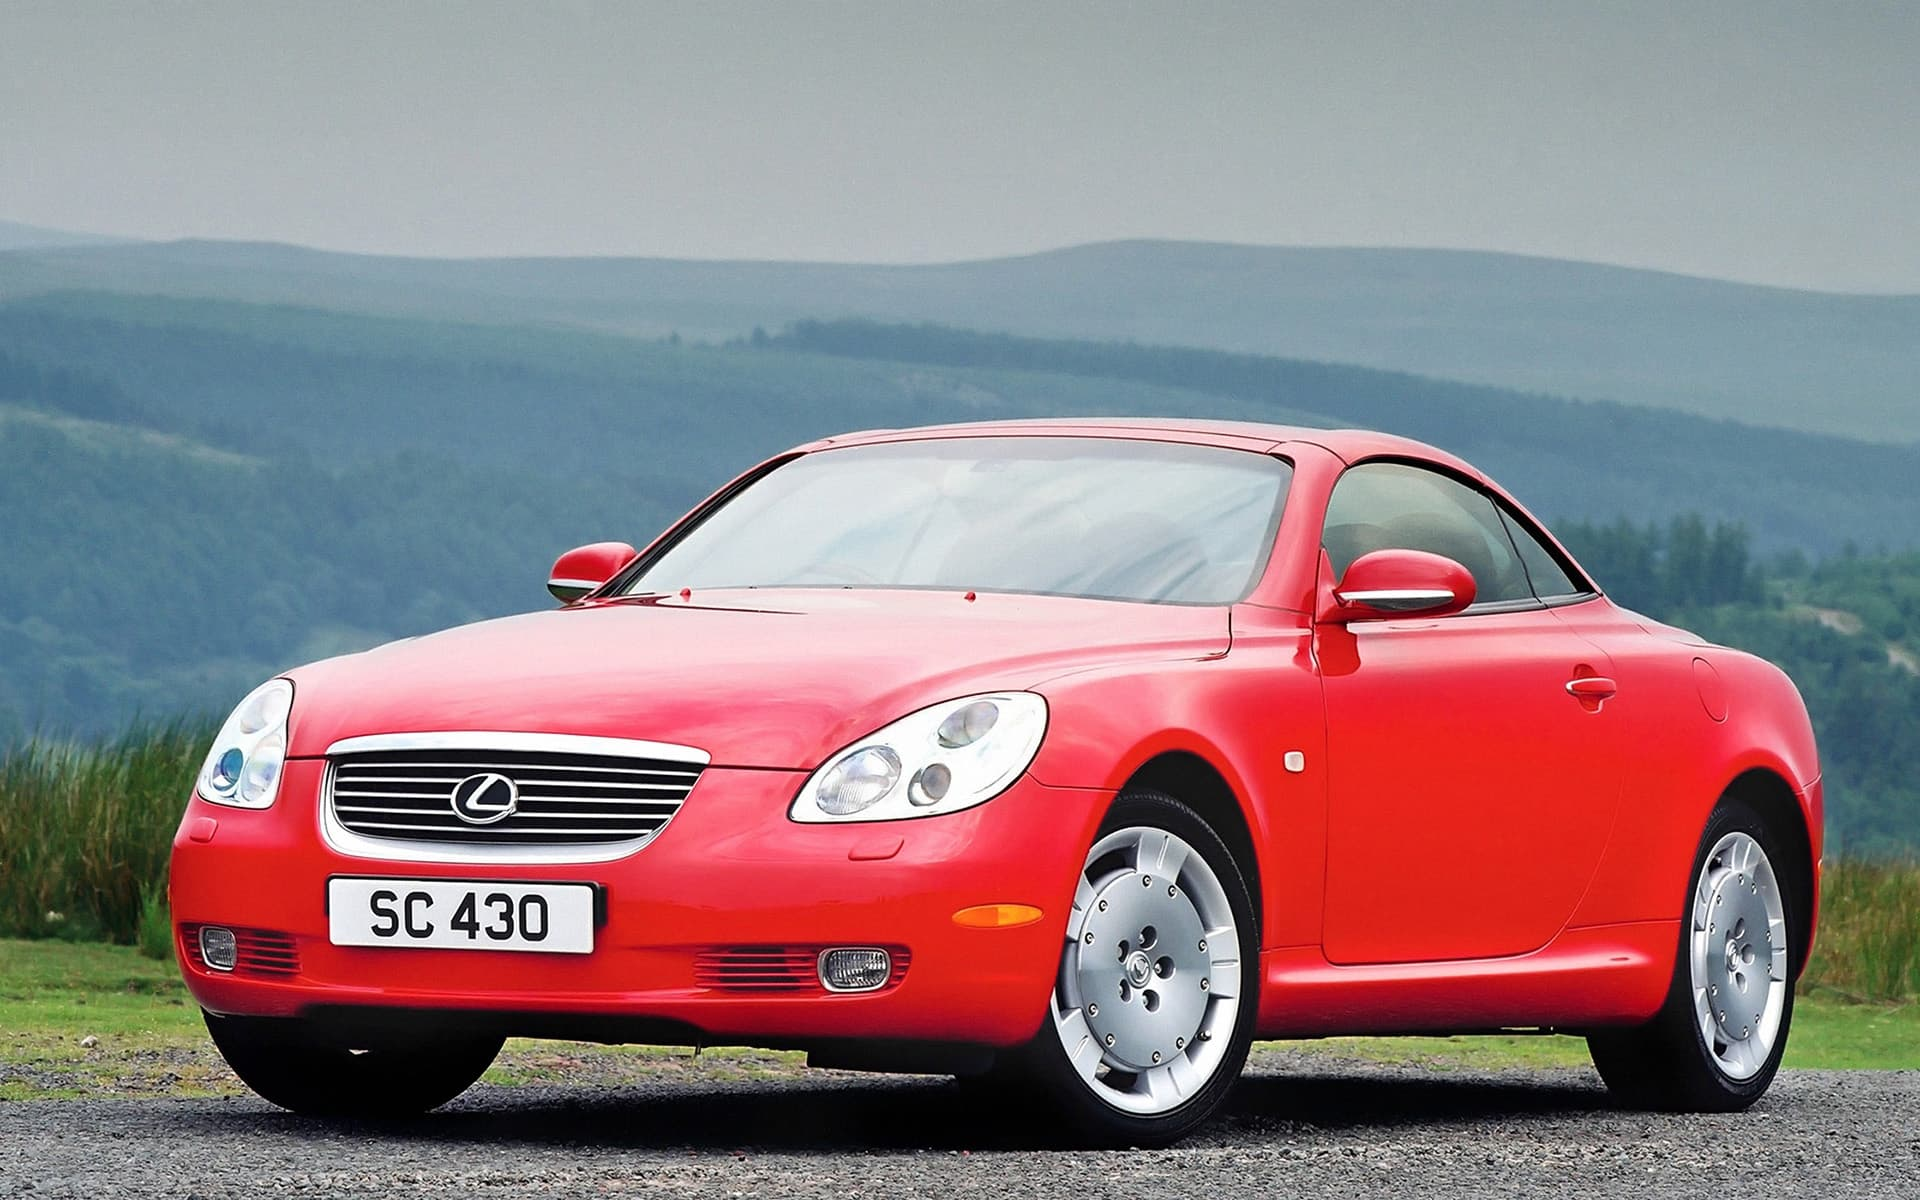 Lexus SC430 2001 red High Quality wallpaper